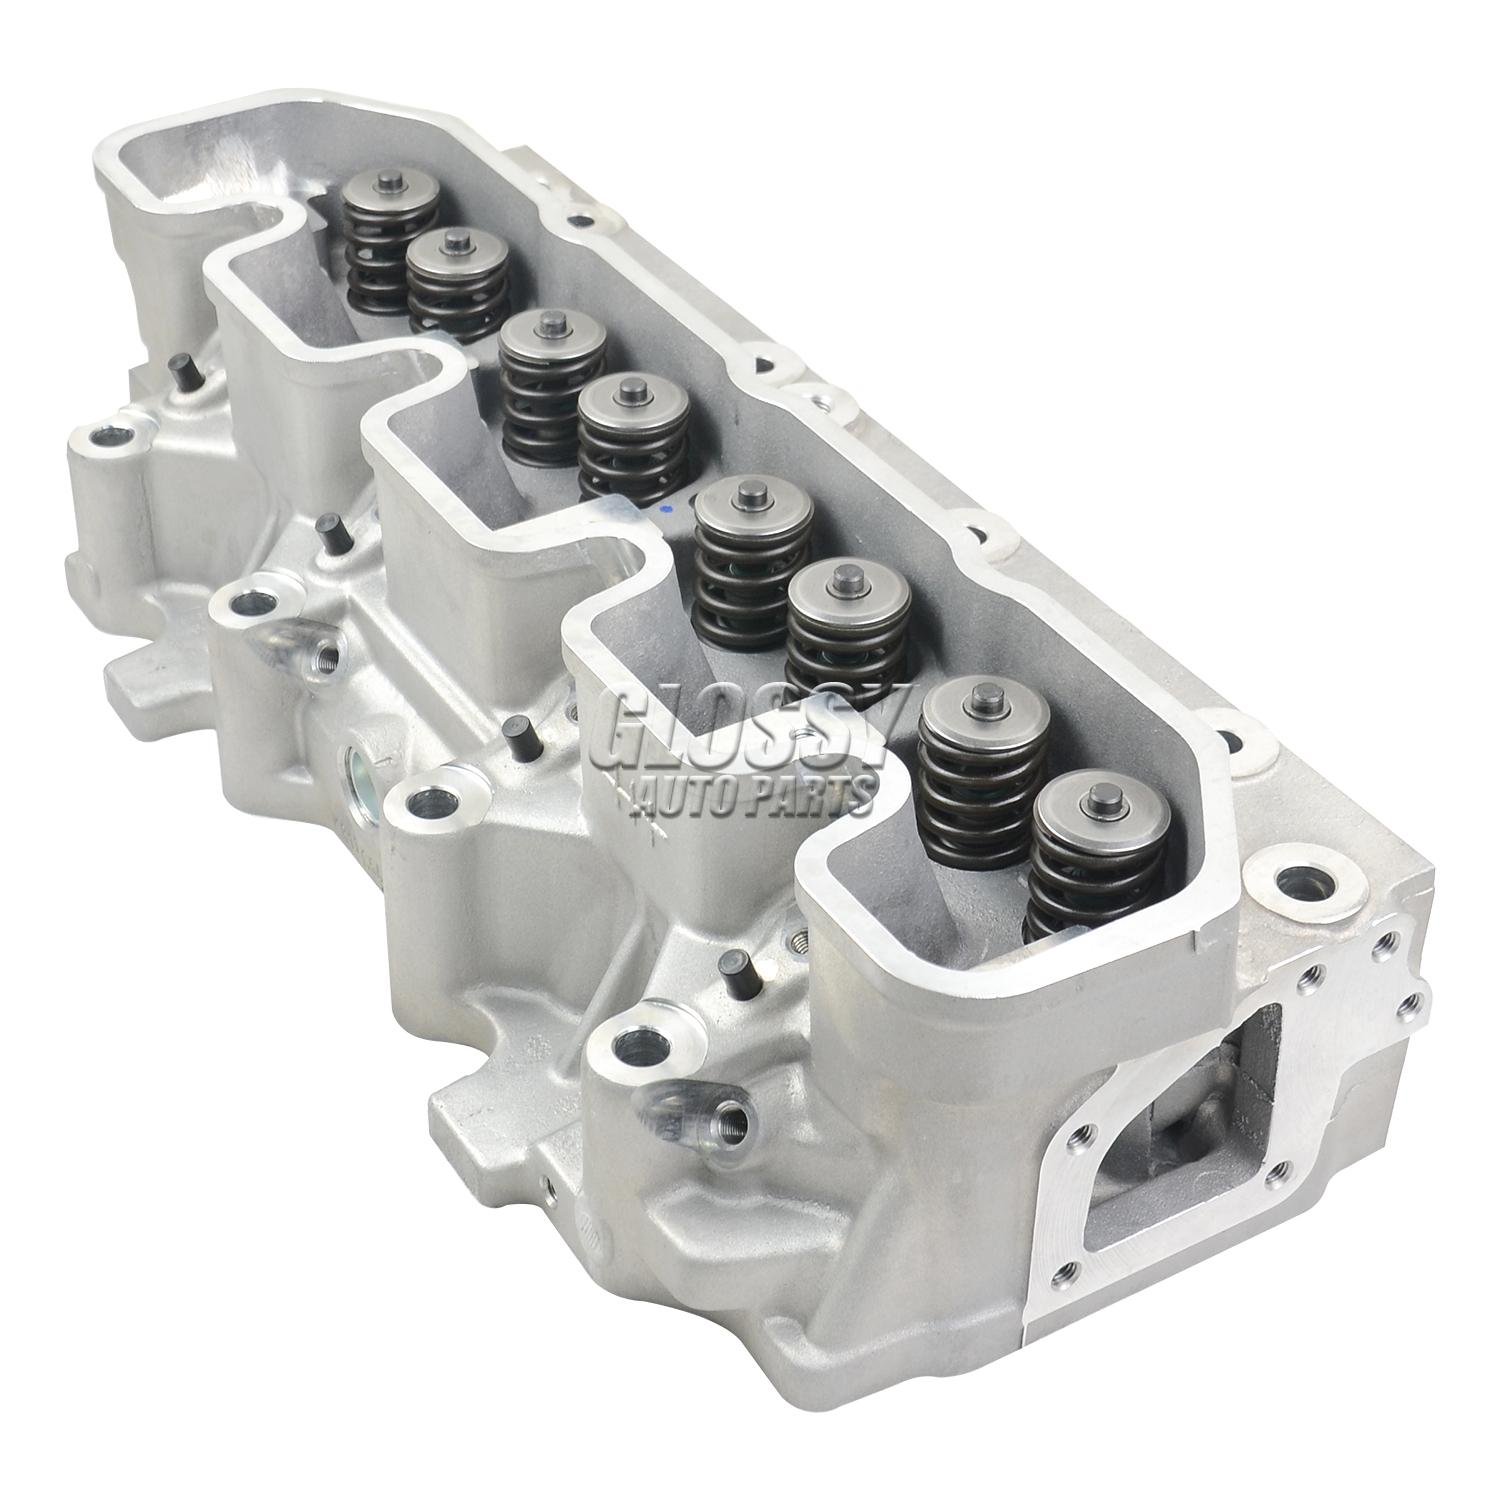 AP03 300Tdi Cylinder Head With Valves For Defender Discovery Range Rover Classic